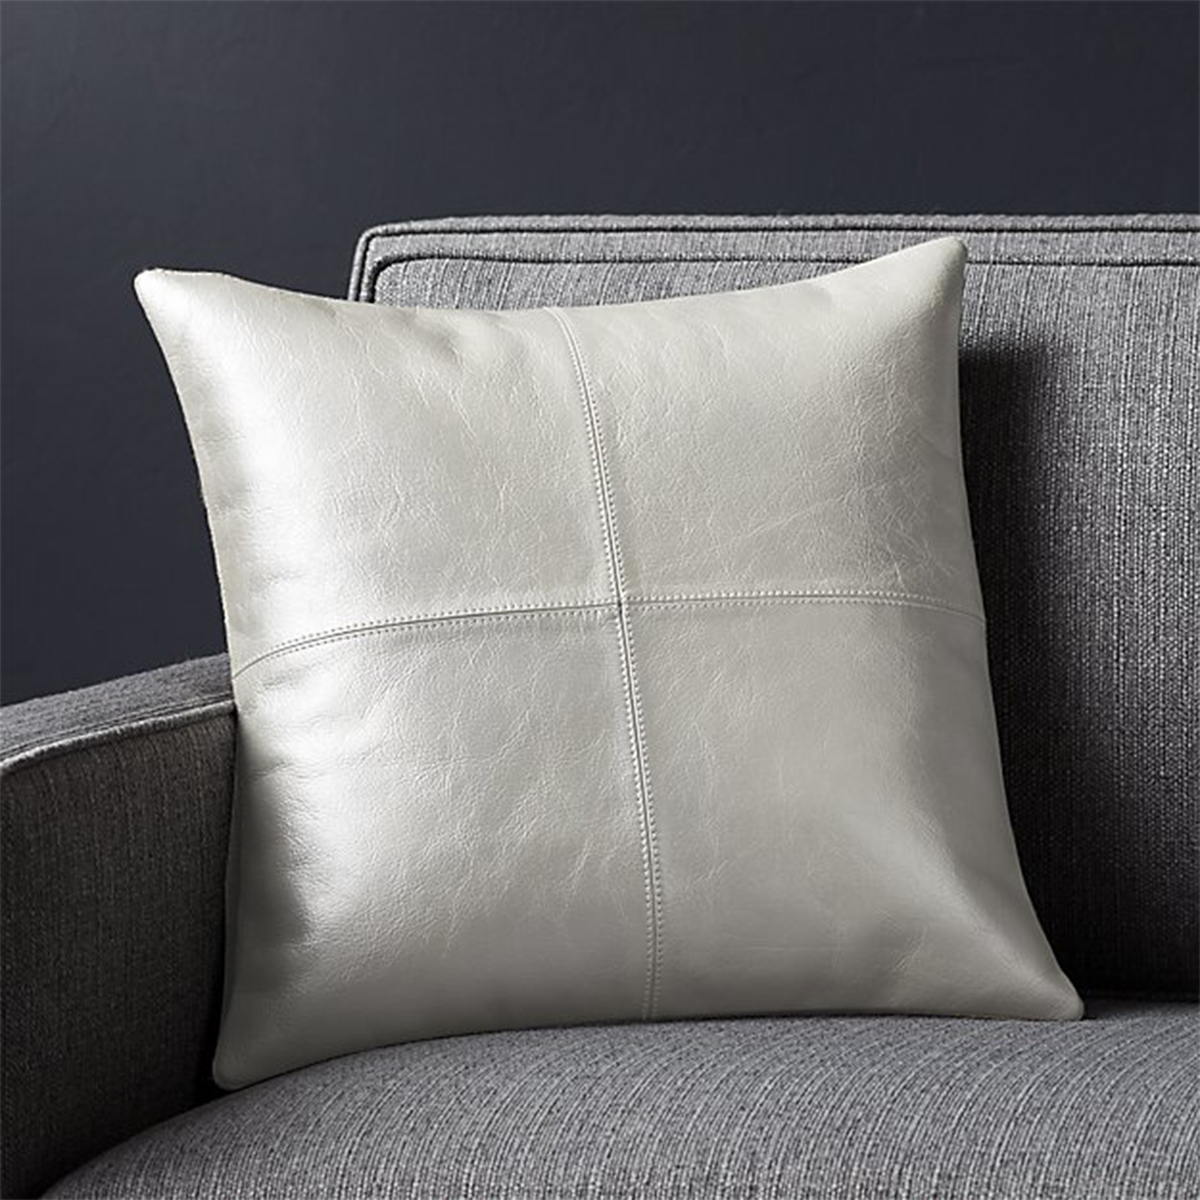 Leather decorative pillow in a metallic silver color photo